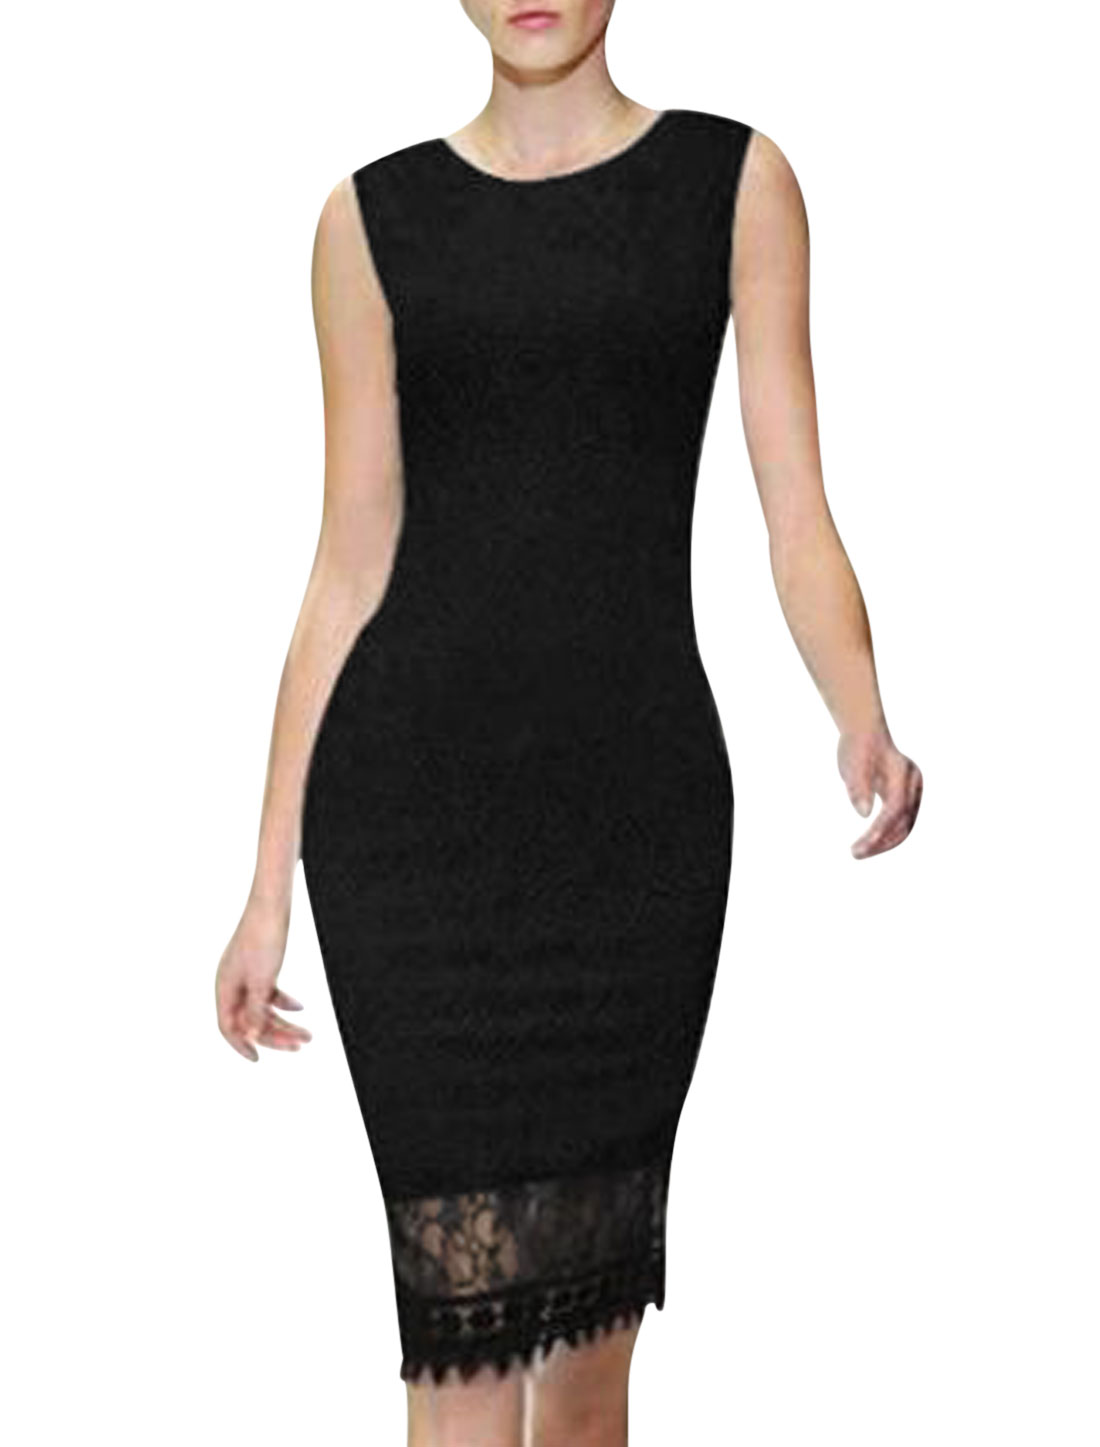 Ladies Round Neck Sleevess Semi Sheer Lace Dress Black S